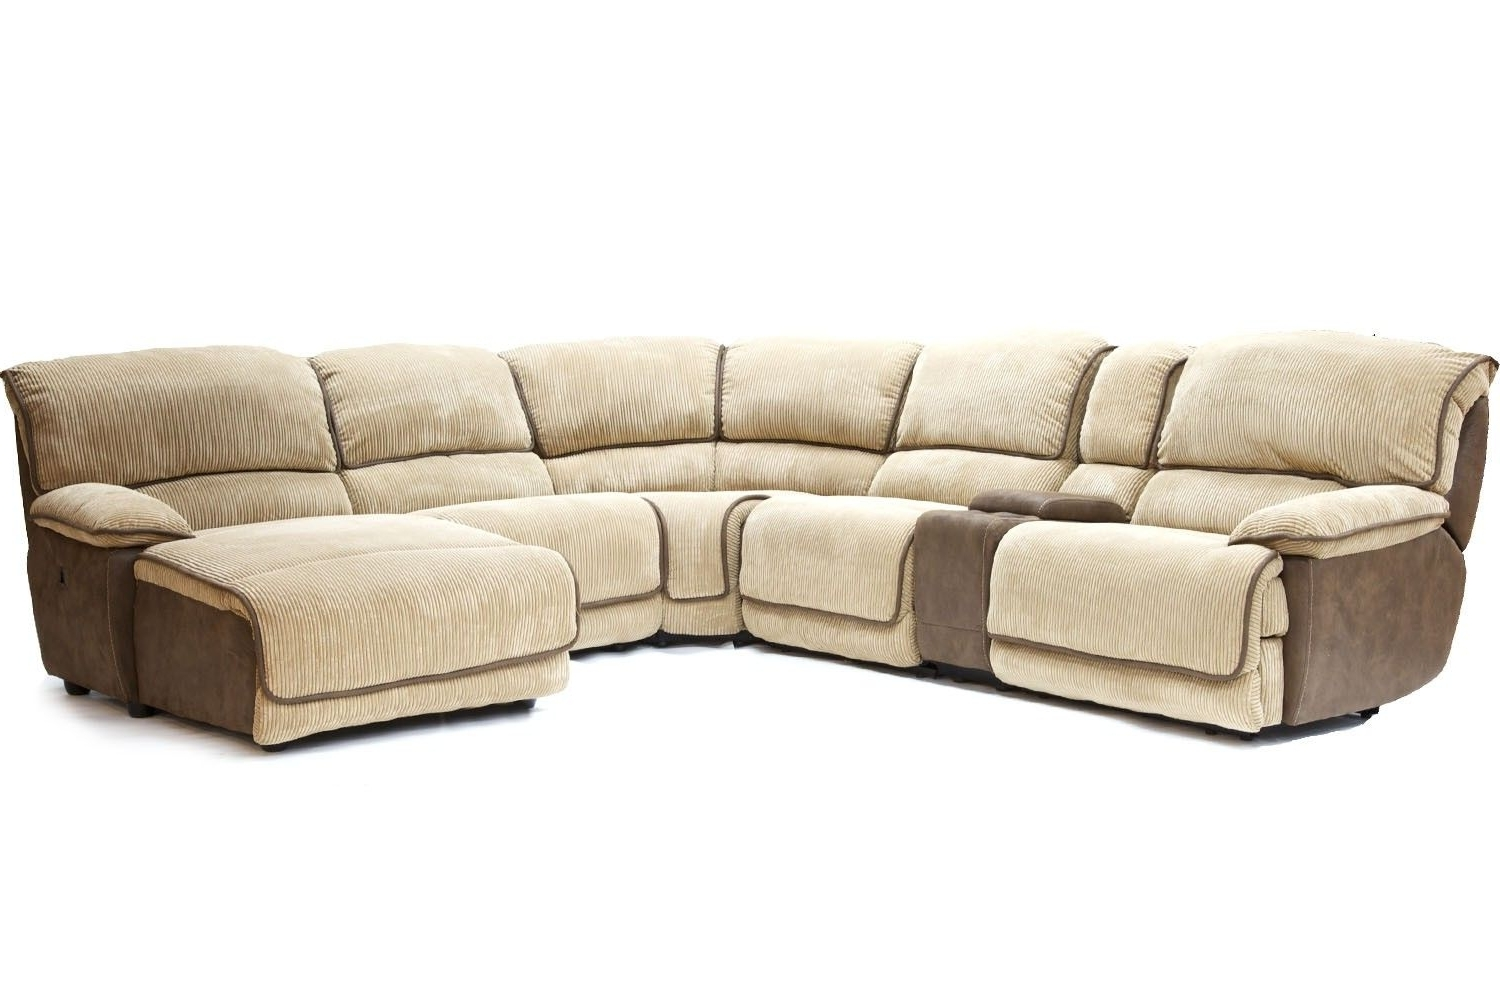 Most Up To Date Sectional Sofas At Austin In Mor Furniture For Less: The Austin Cafe Reclining Living Room (View 5 of 20)